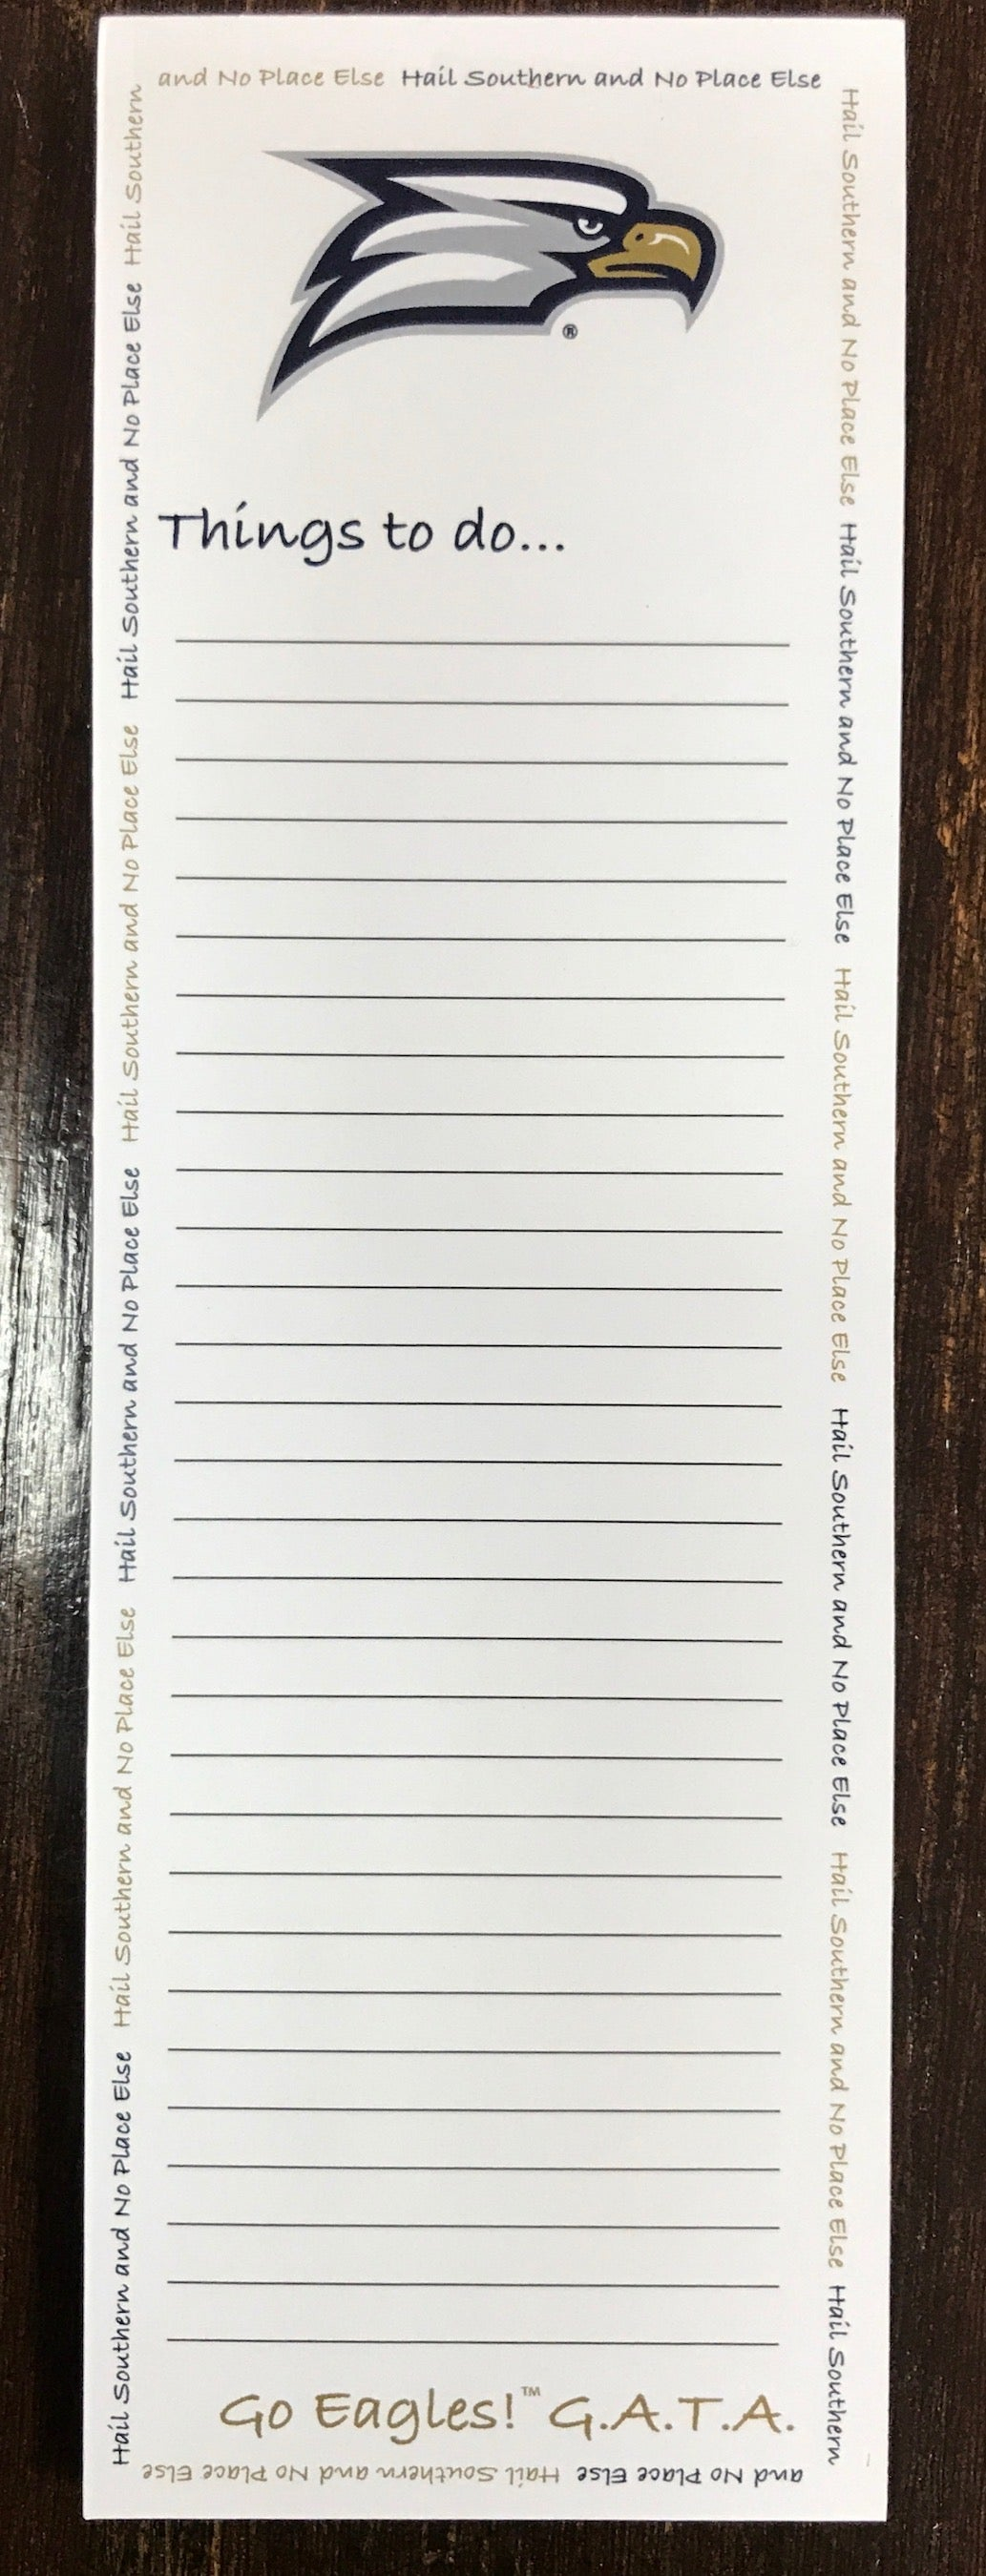 To Do Note Pad with Magnet